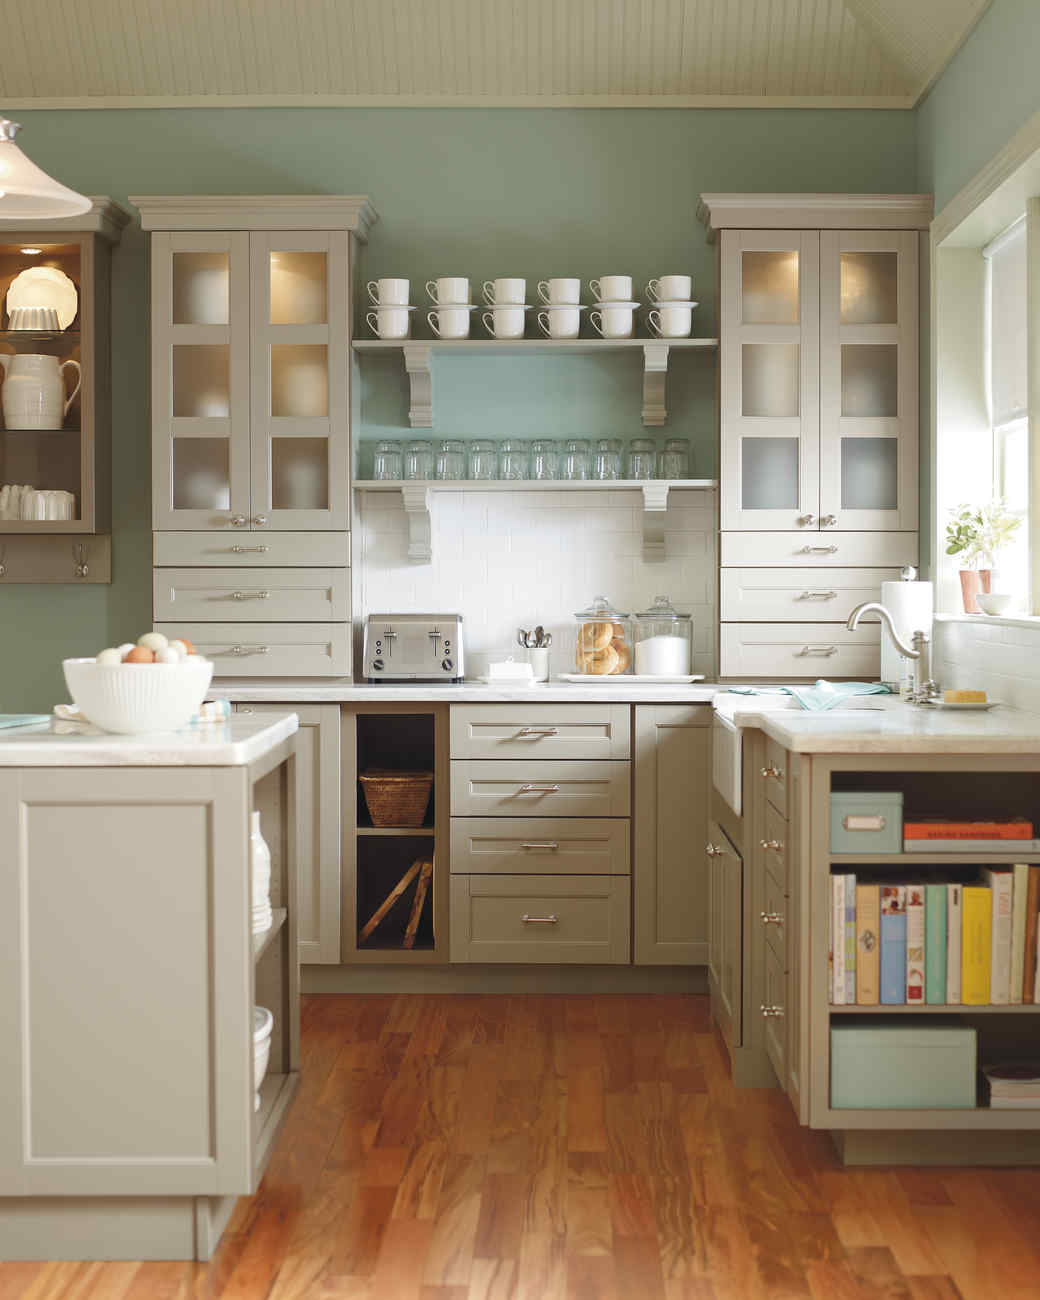 Kitchen Colors Color Schemes And Designs: How To Pick Kitchen Paint Colors